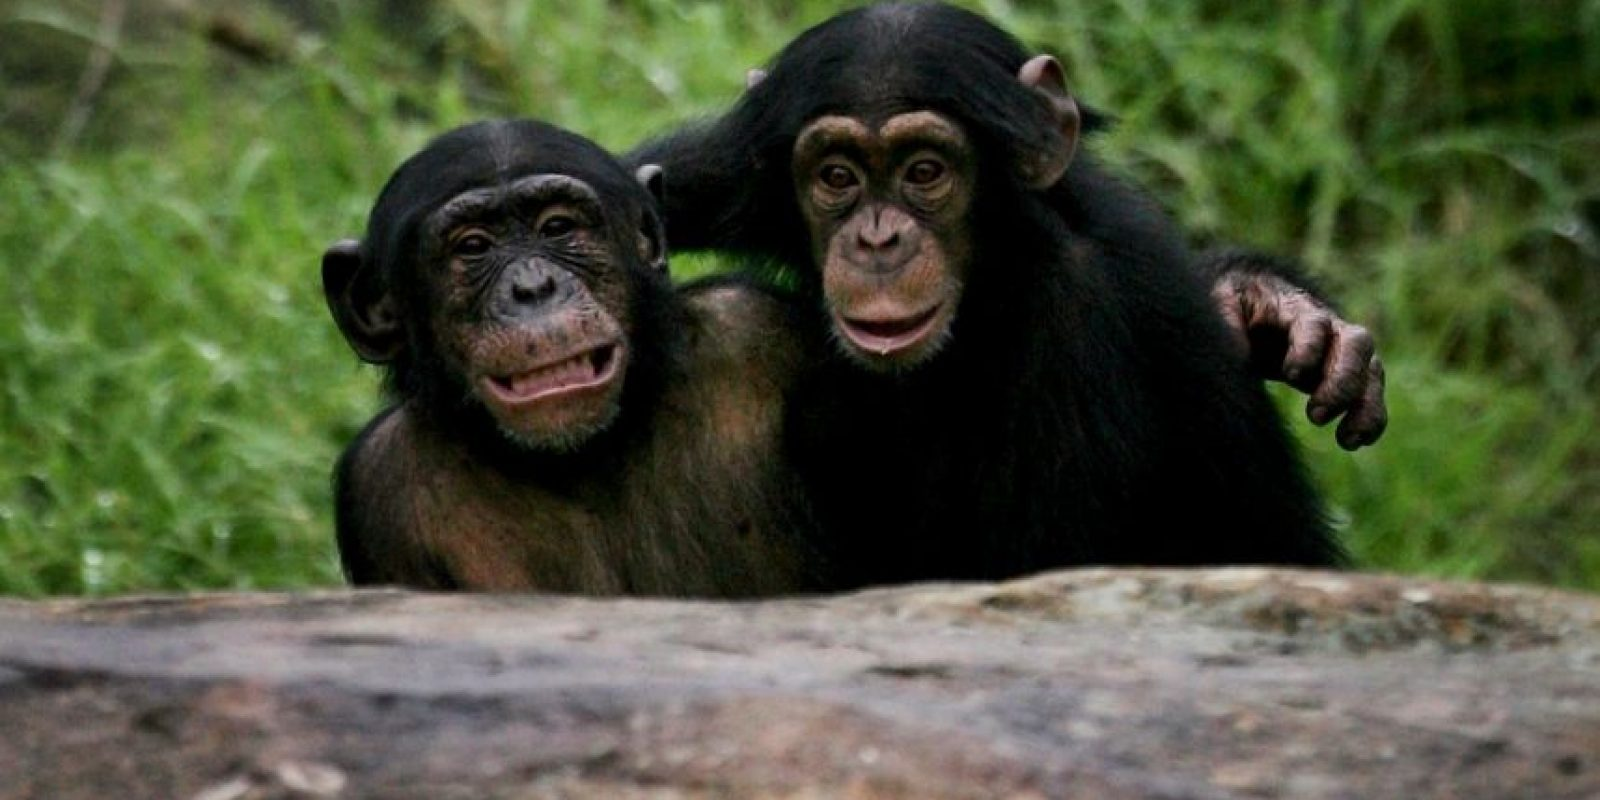 Descubren que los chimpancés consumen alcohol voluntariamente Foto: Getty Images